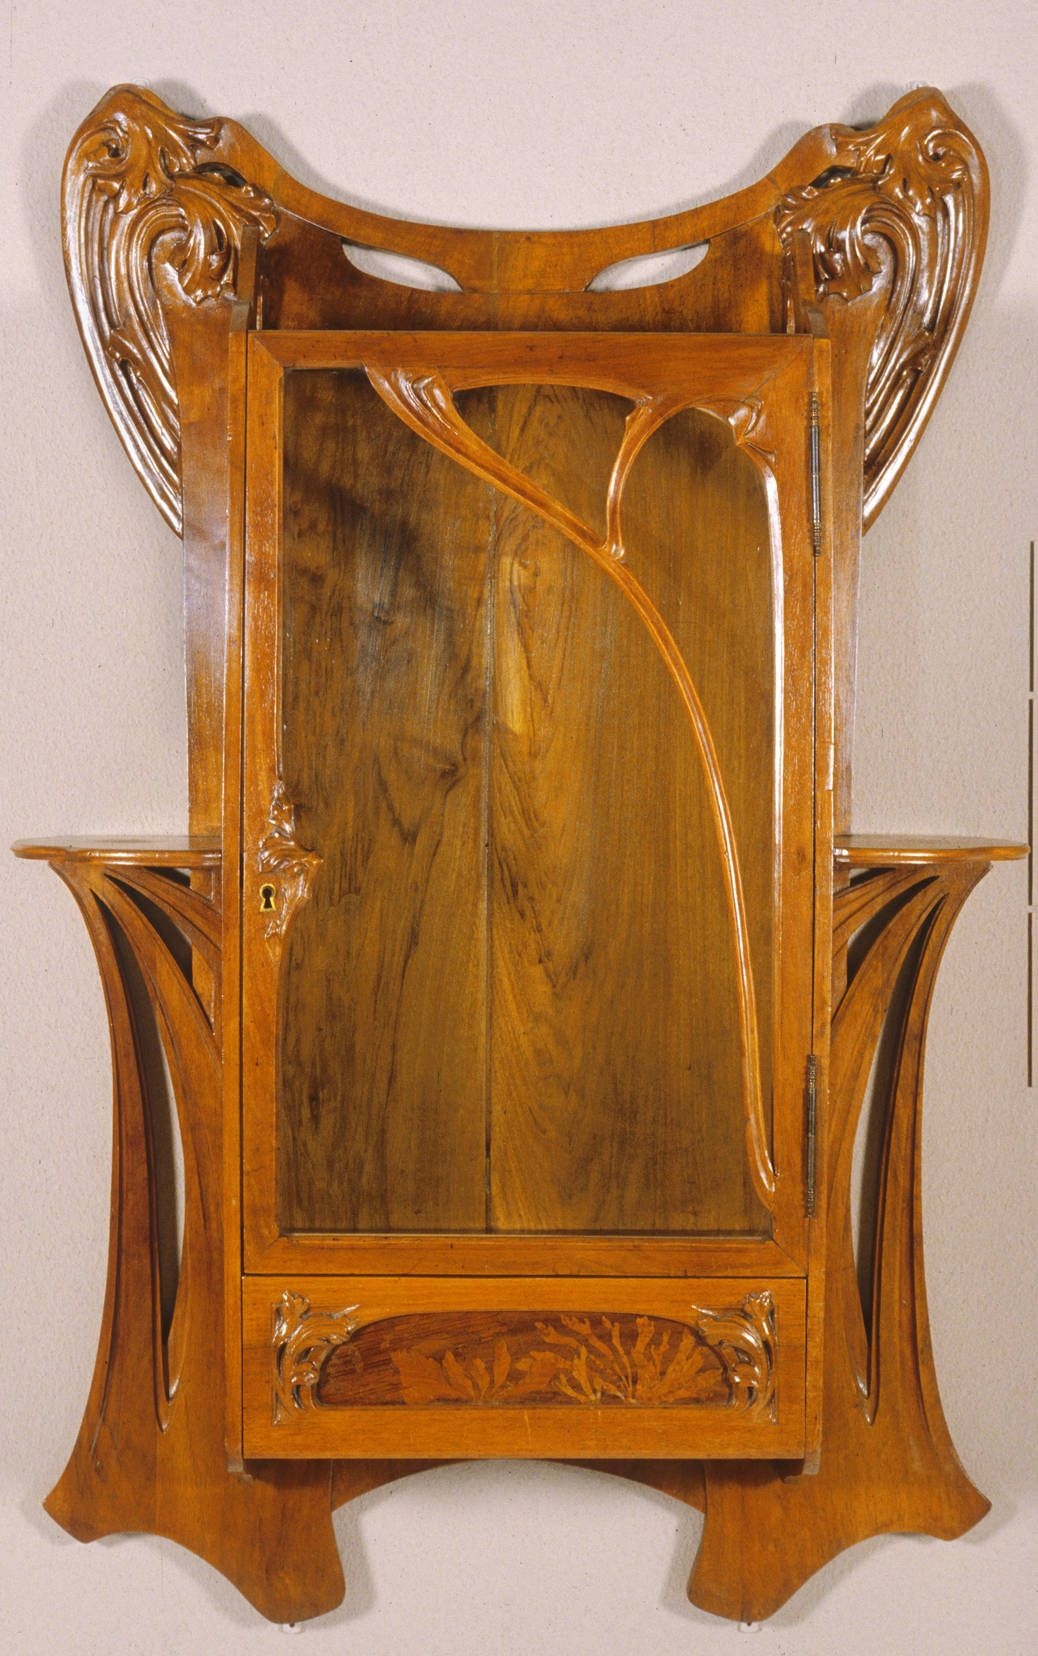 Art Nouveau Furniture In 1890